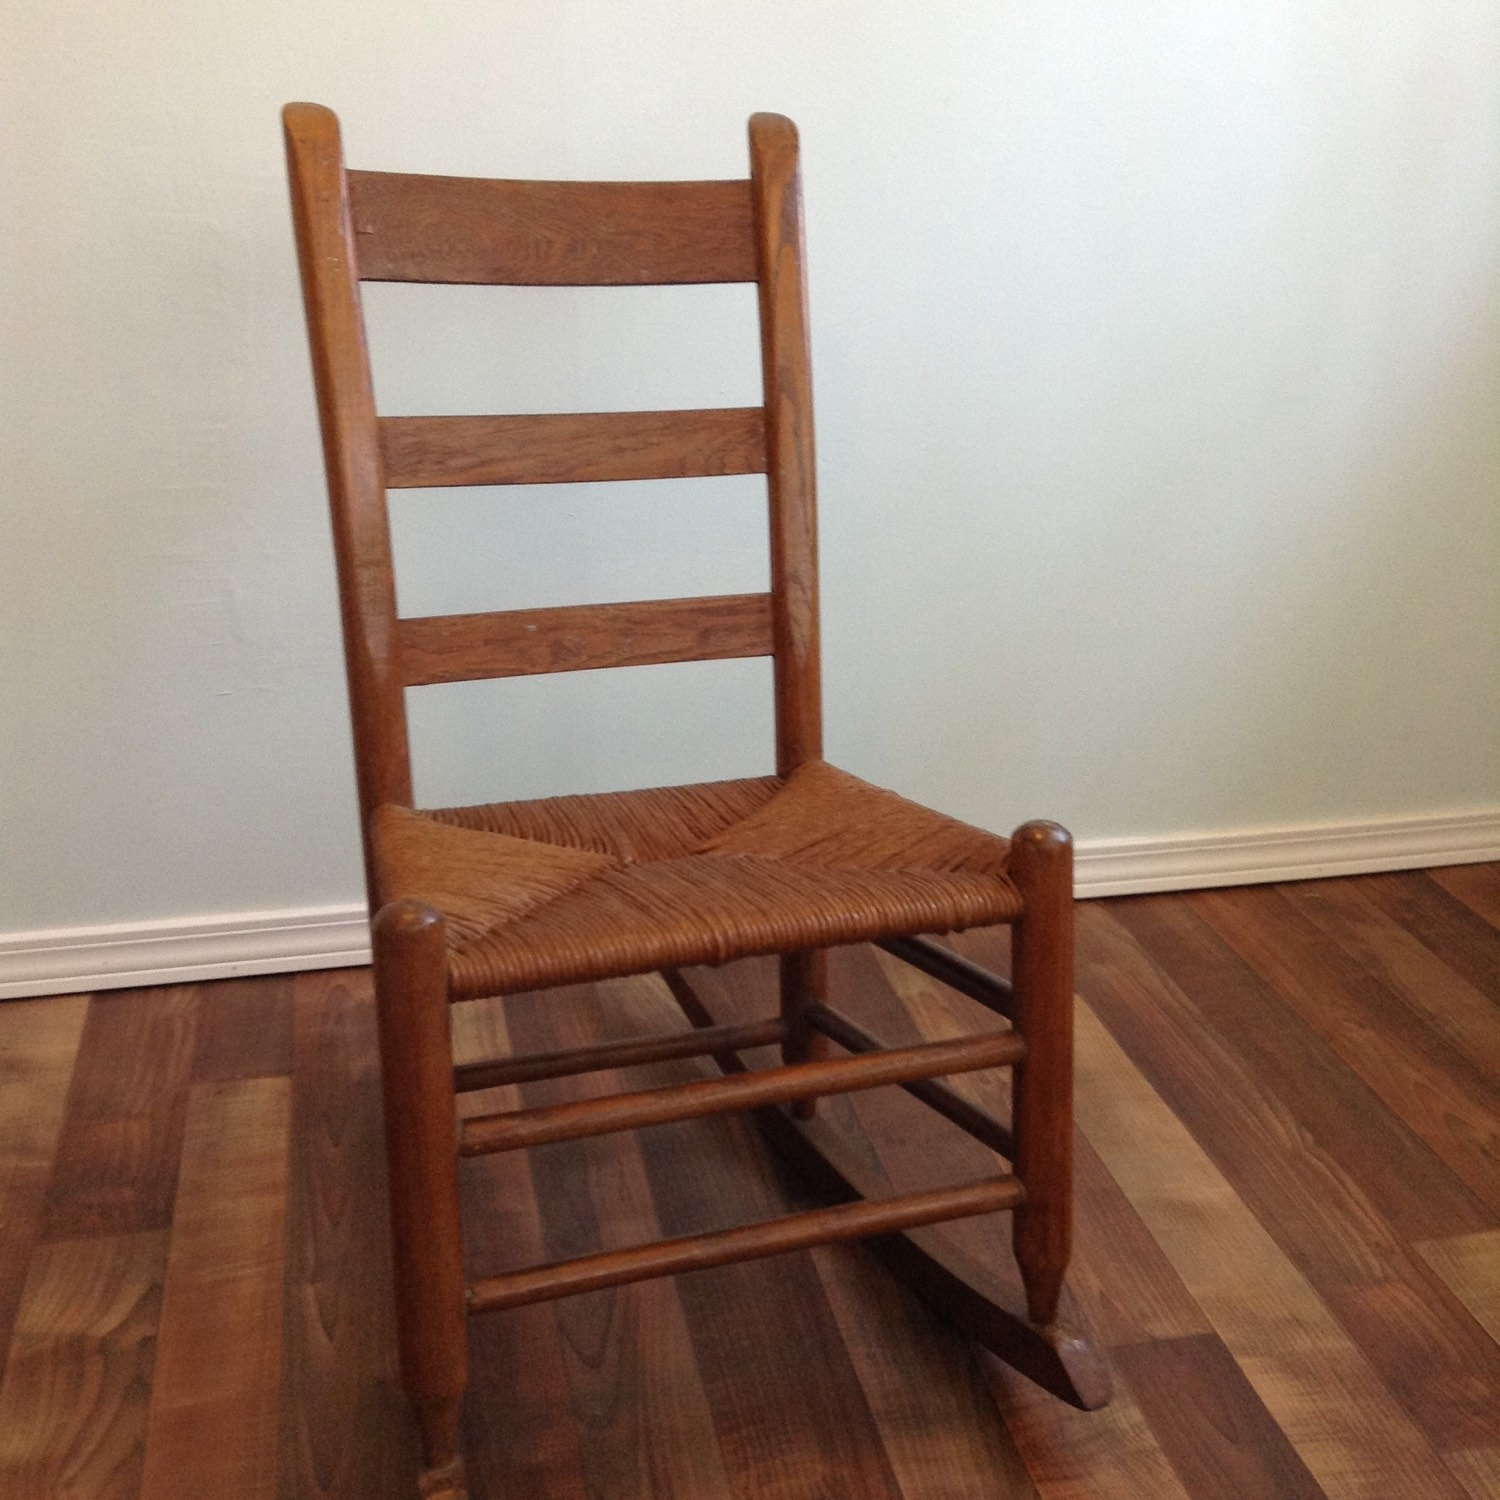 chairs for ladder back oak chairs image source